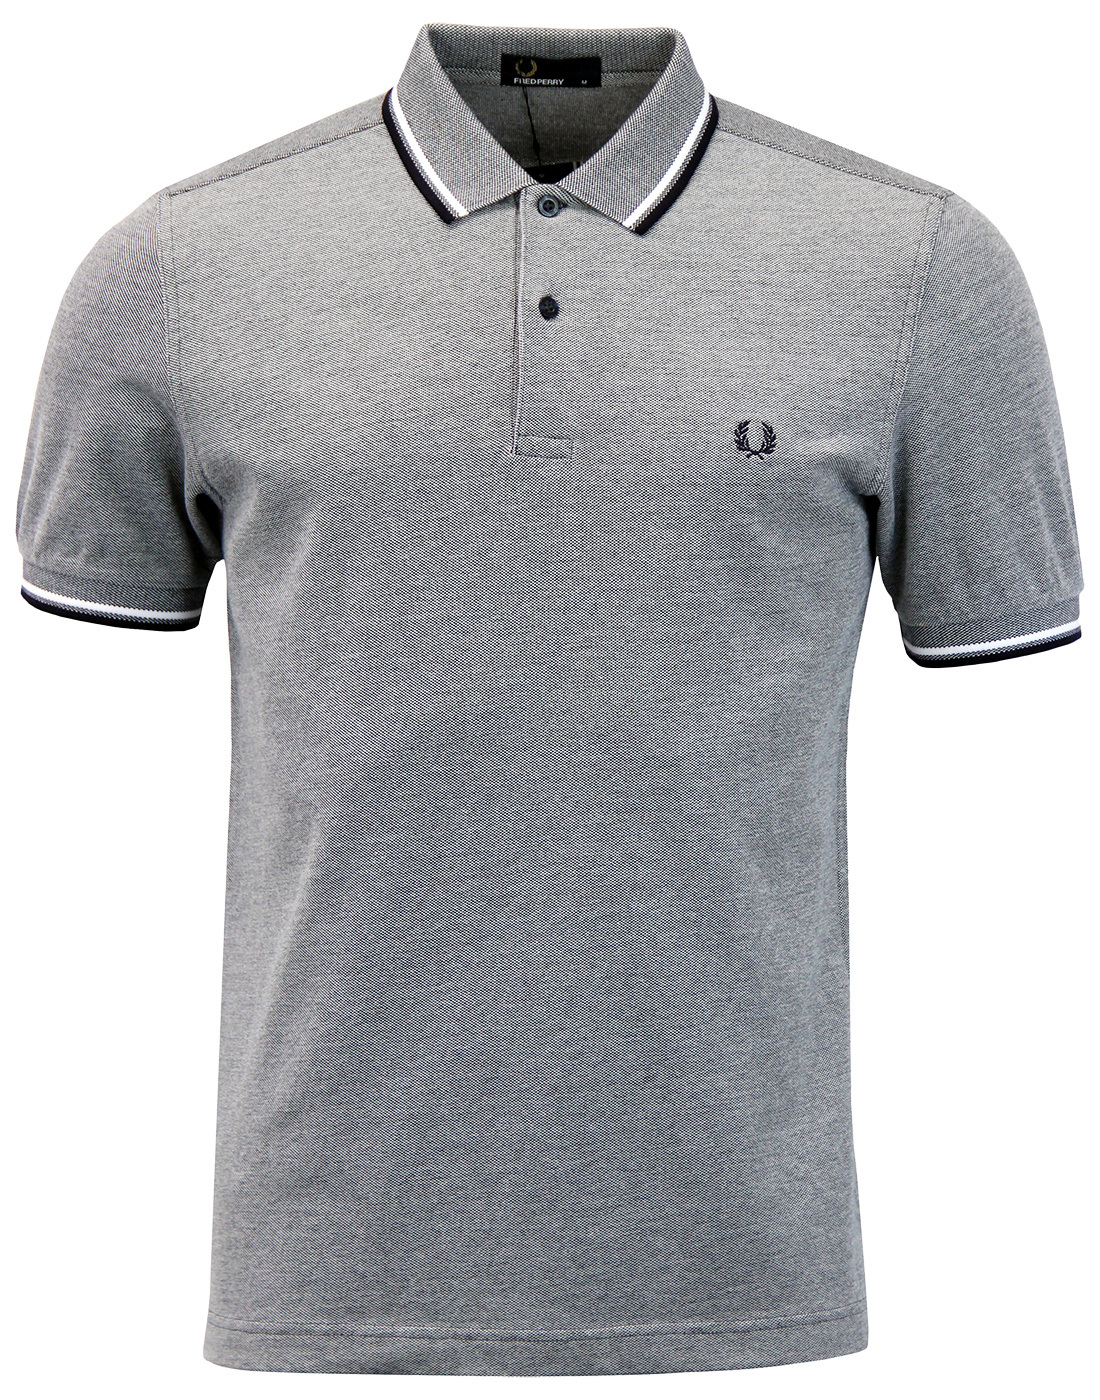 FRED PERRY M3600 Mod Twin Tipped Polo Shirt - DC